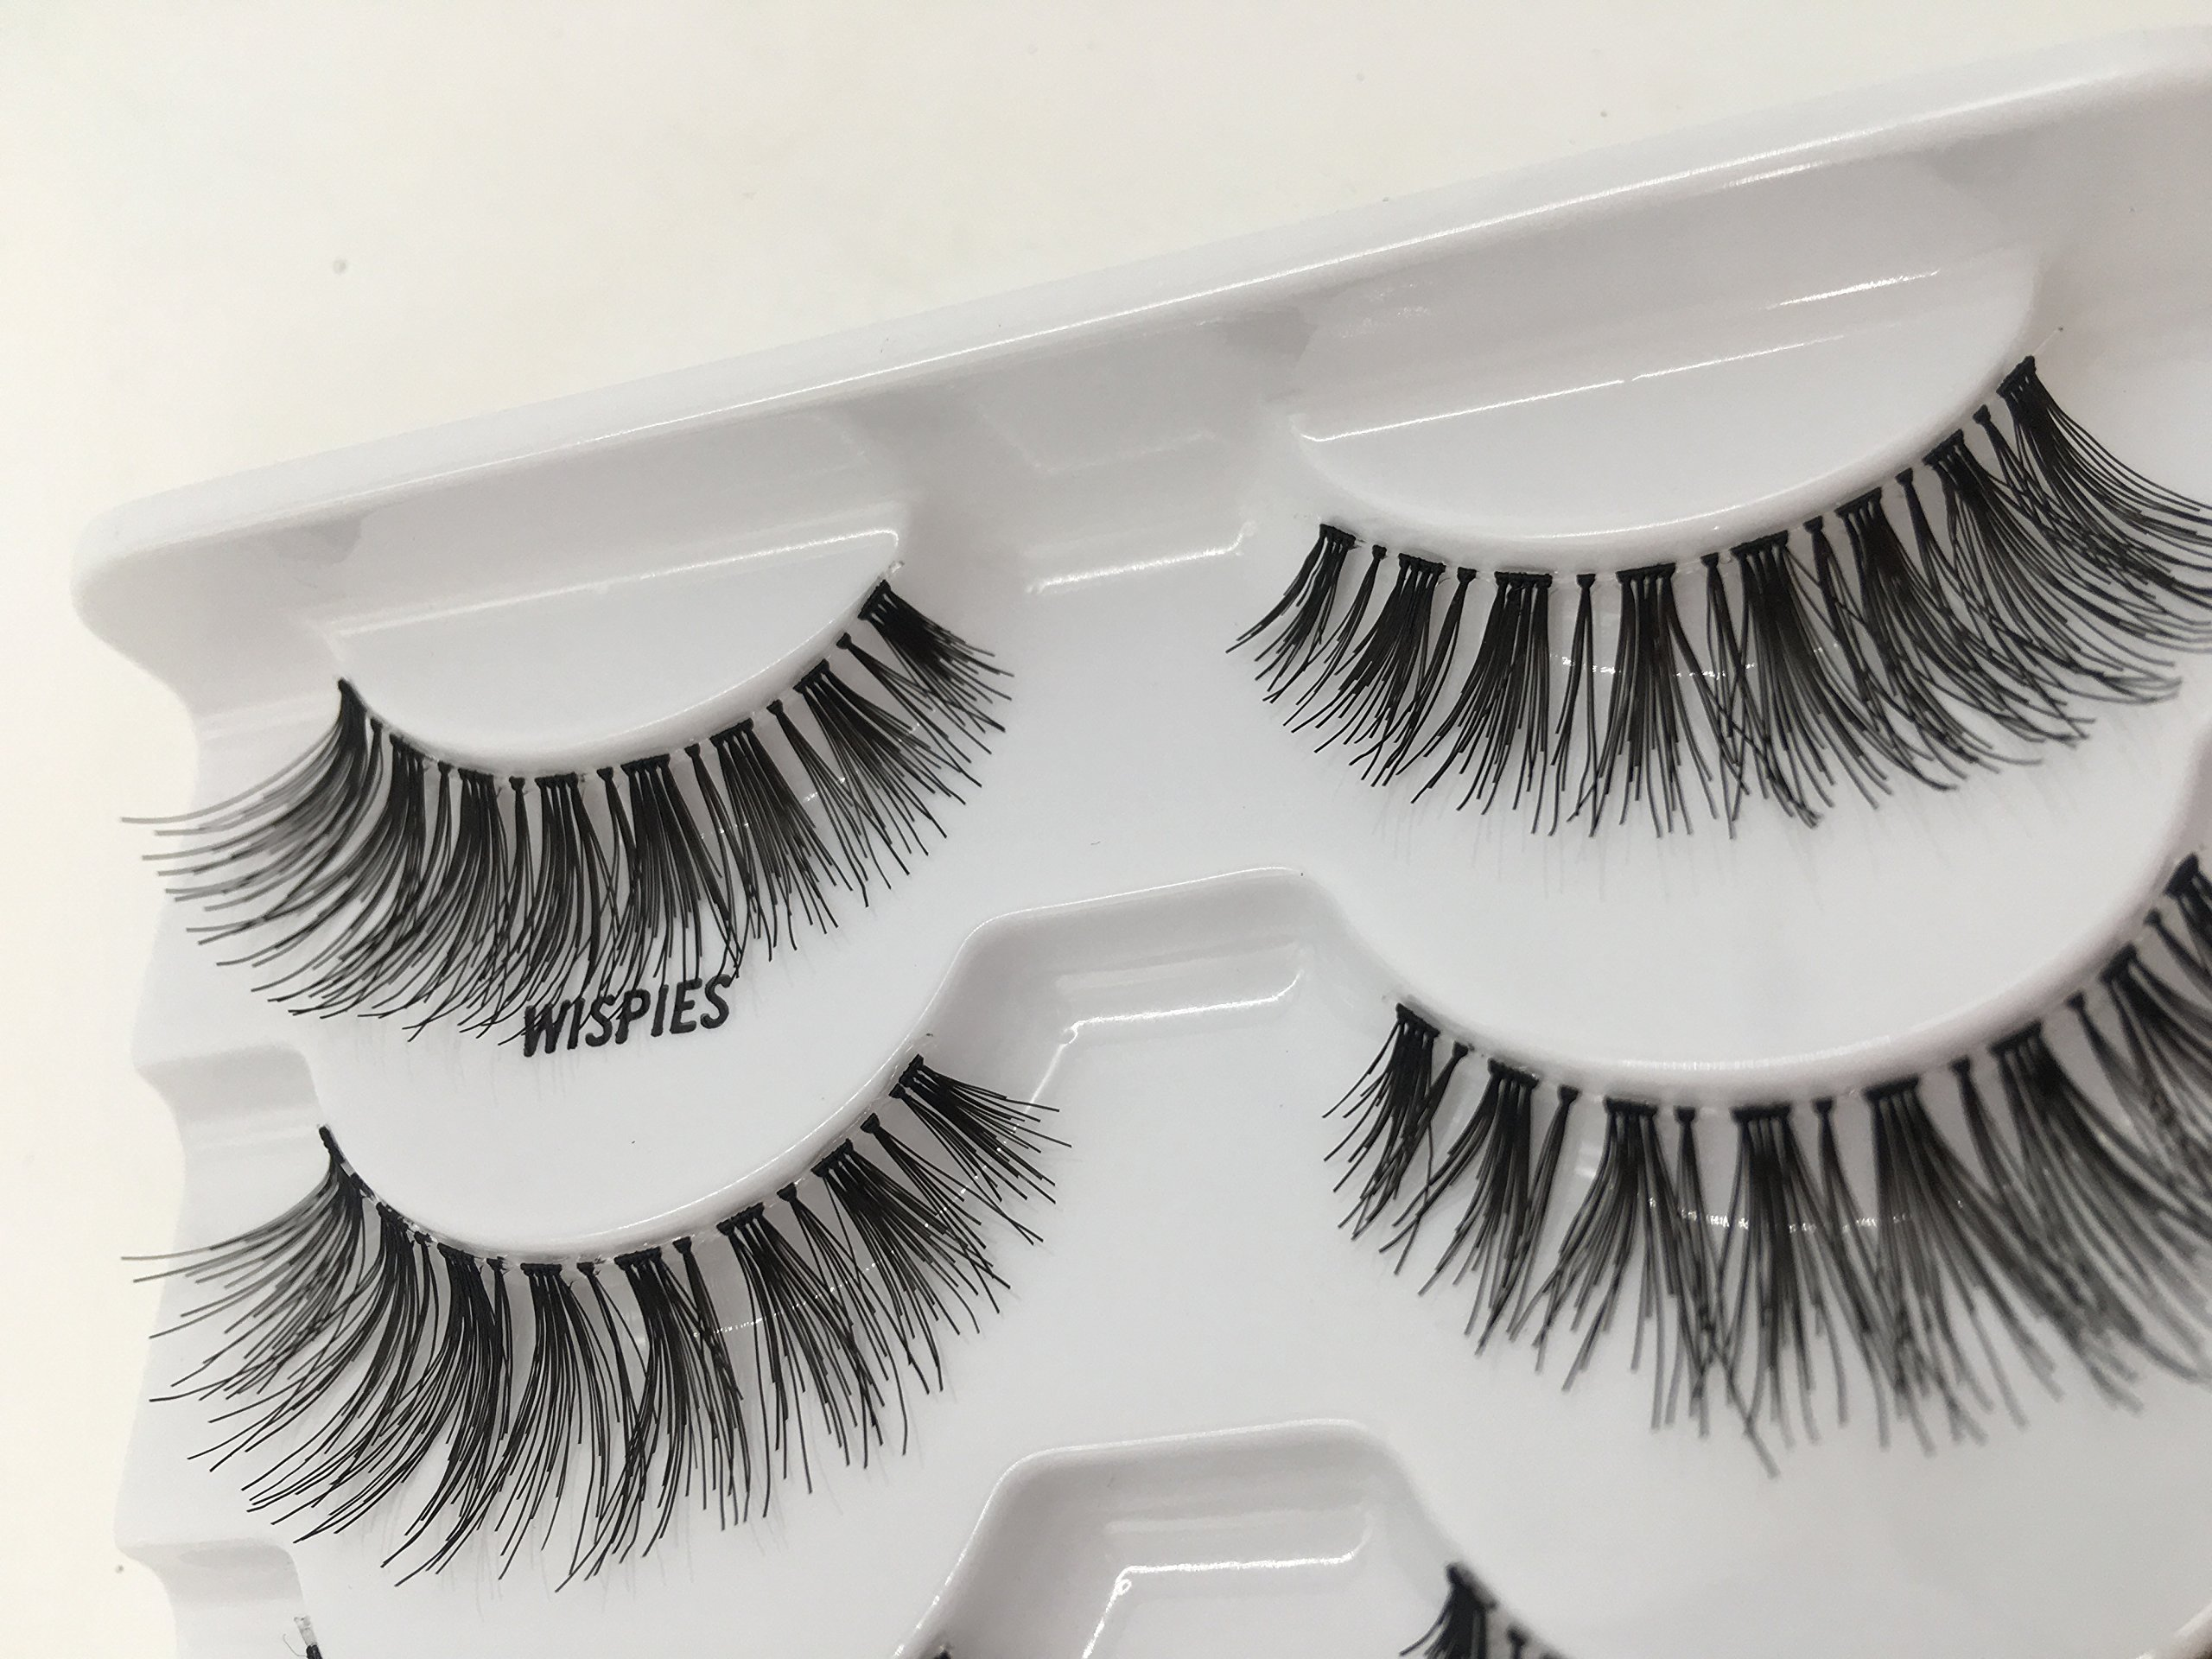 JIMIRE HELLO BEAUTY Multipack Demi Wispies Fake Eyelashes 2 Pack by JIMIRE (Image #2)